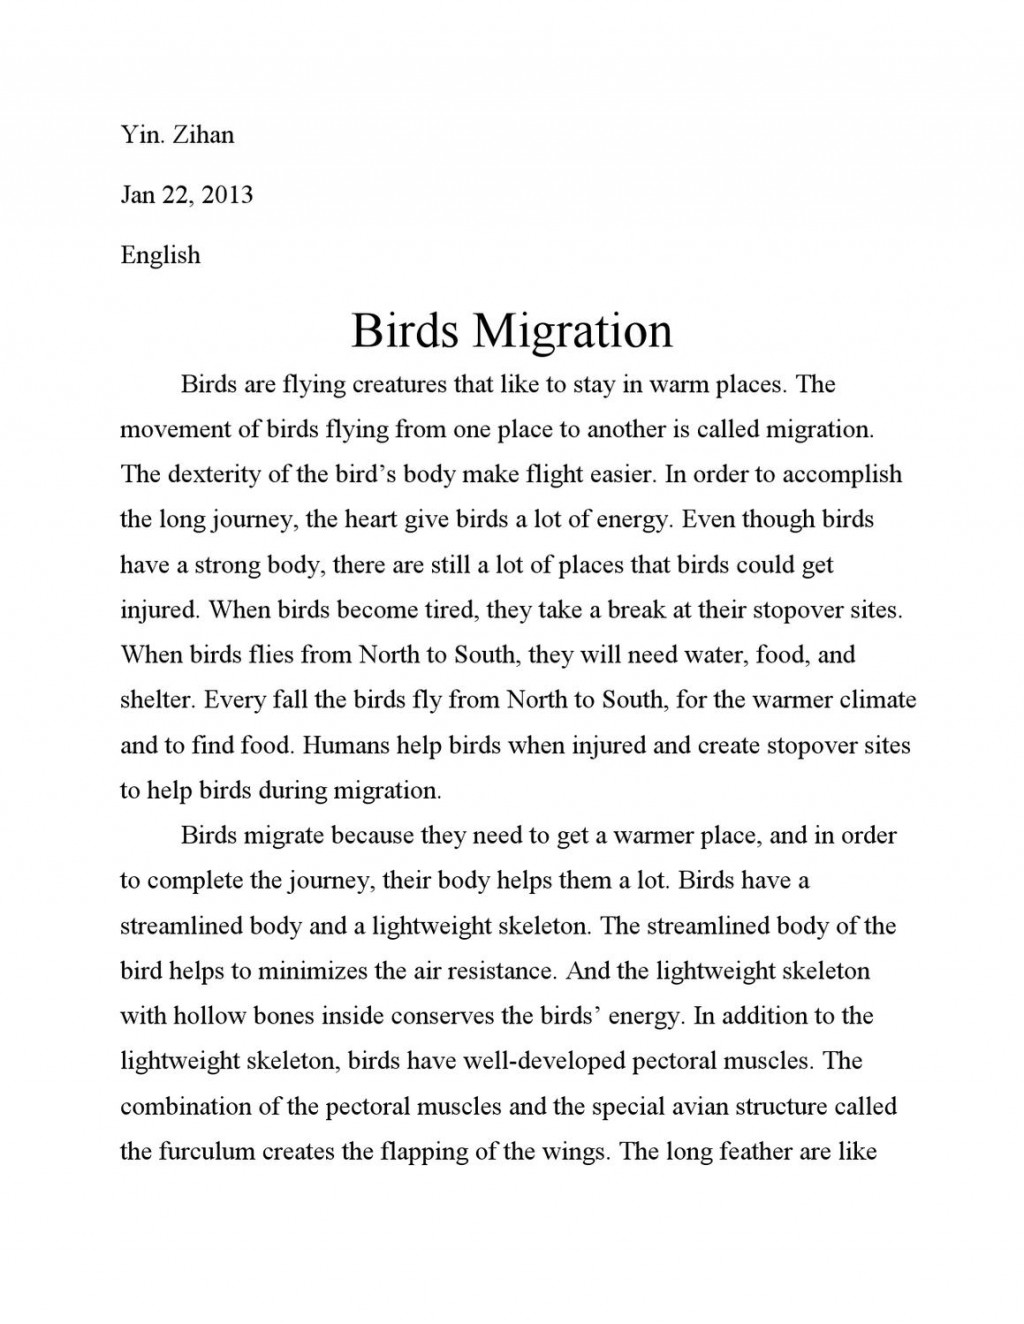 004 Essay On Birds Page 1 Incredible Nest In Telugu Kannada And Animals Large